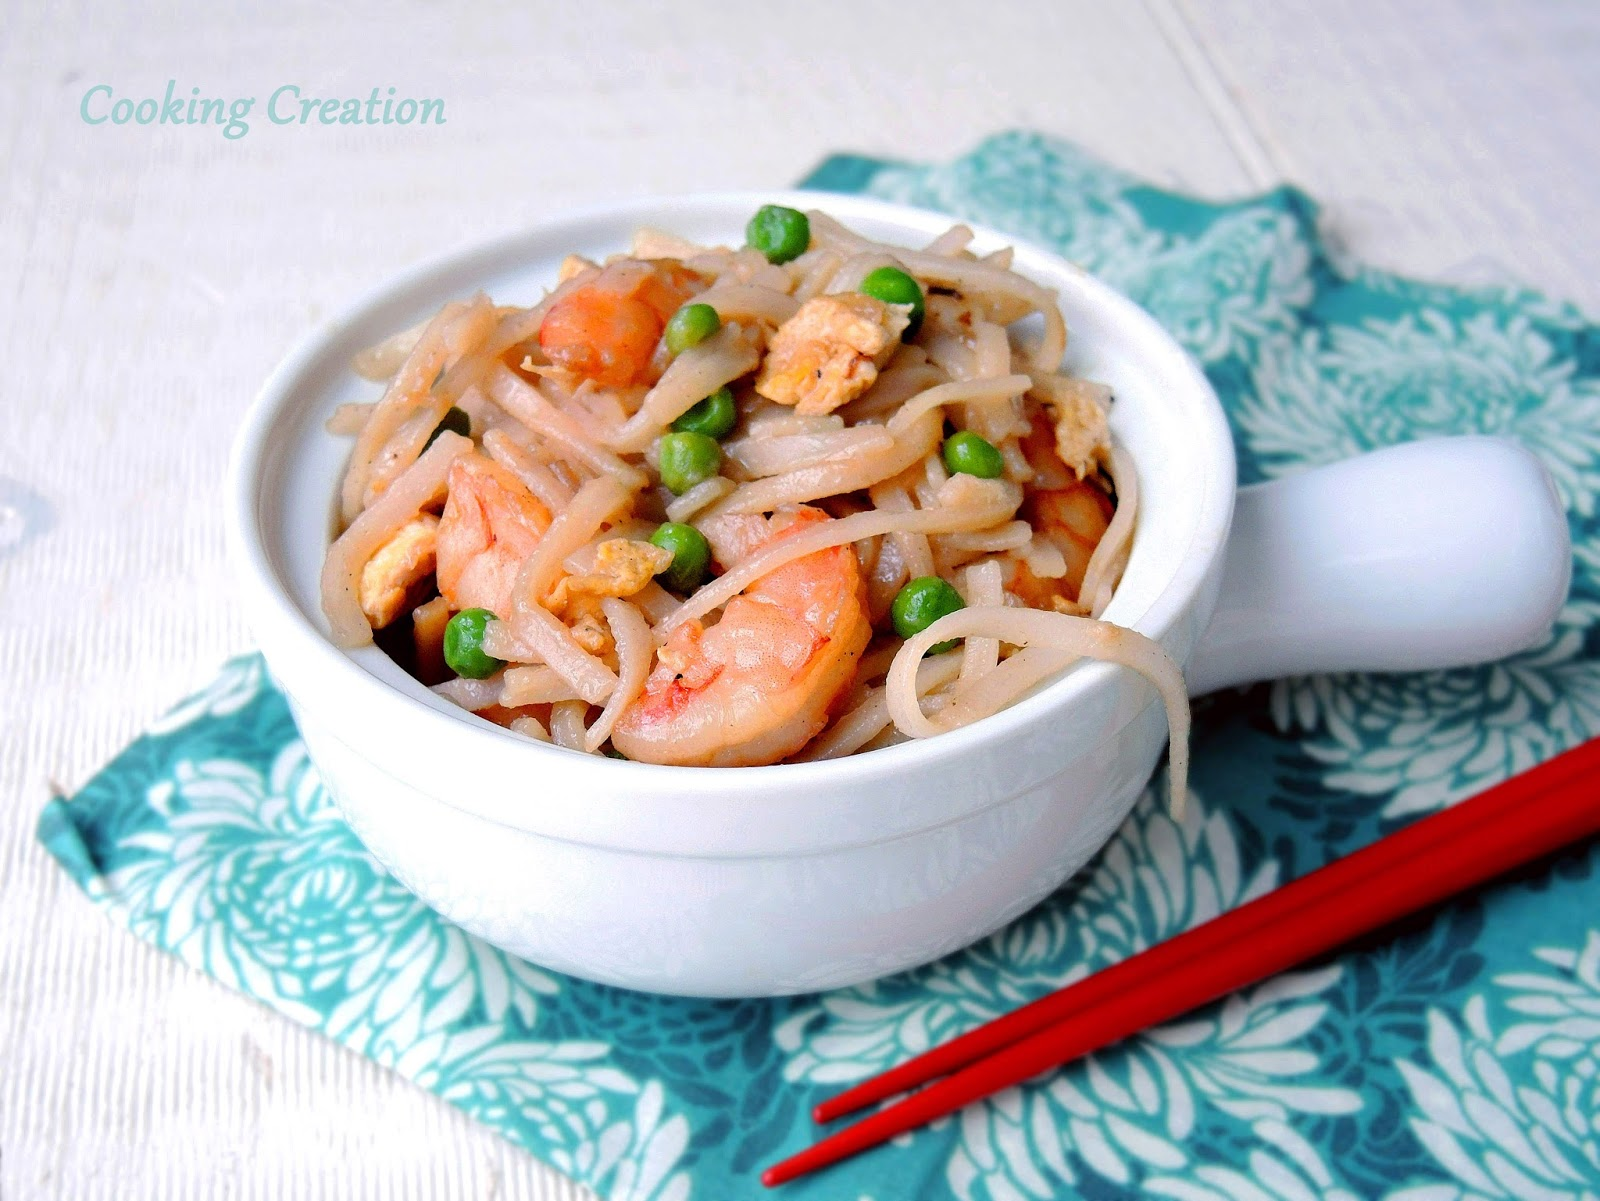 ... Creation: Busy Weeknight Shrimp & Rice Noodle Stir Fry with Peas